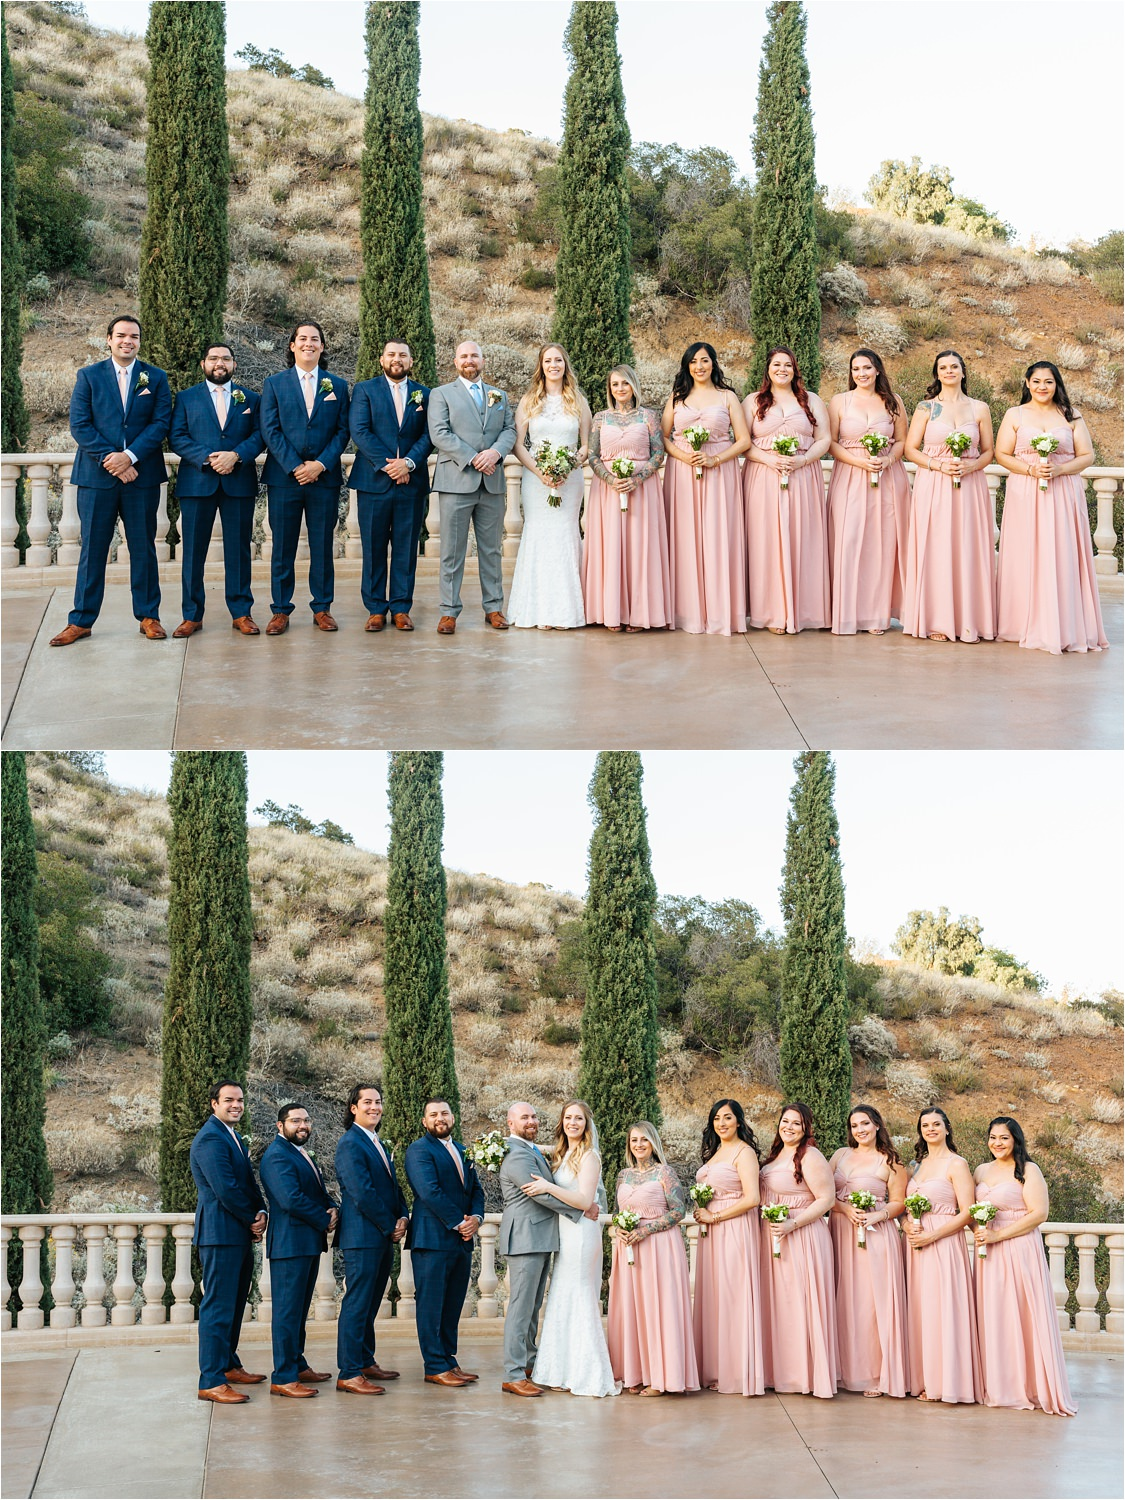 Grey and Pink Wedding Colors - Wedding Party Photos - https://brittneyhannonphotography.com